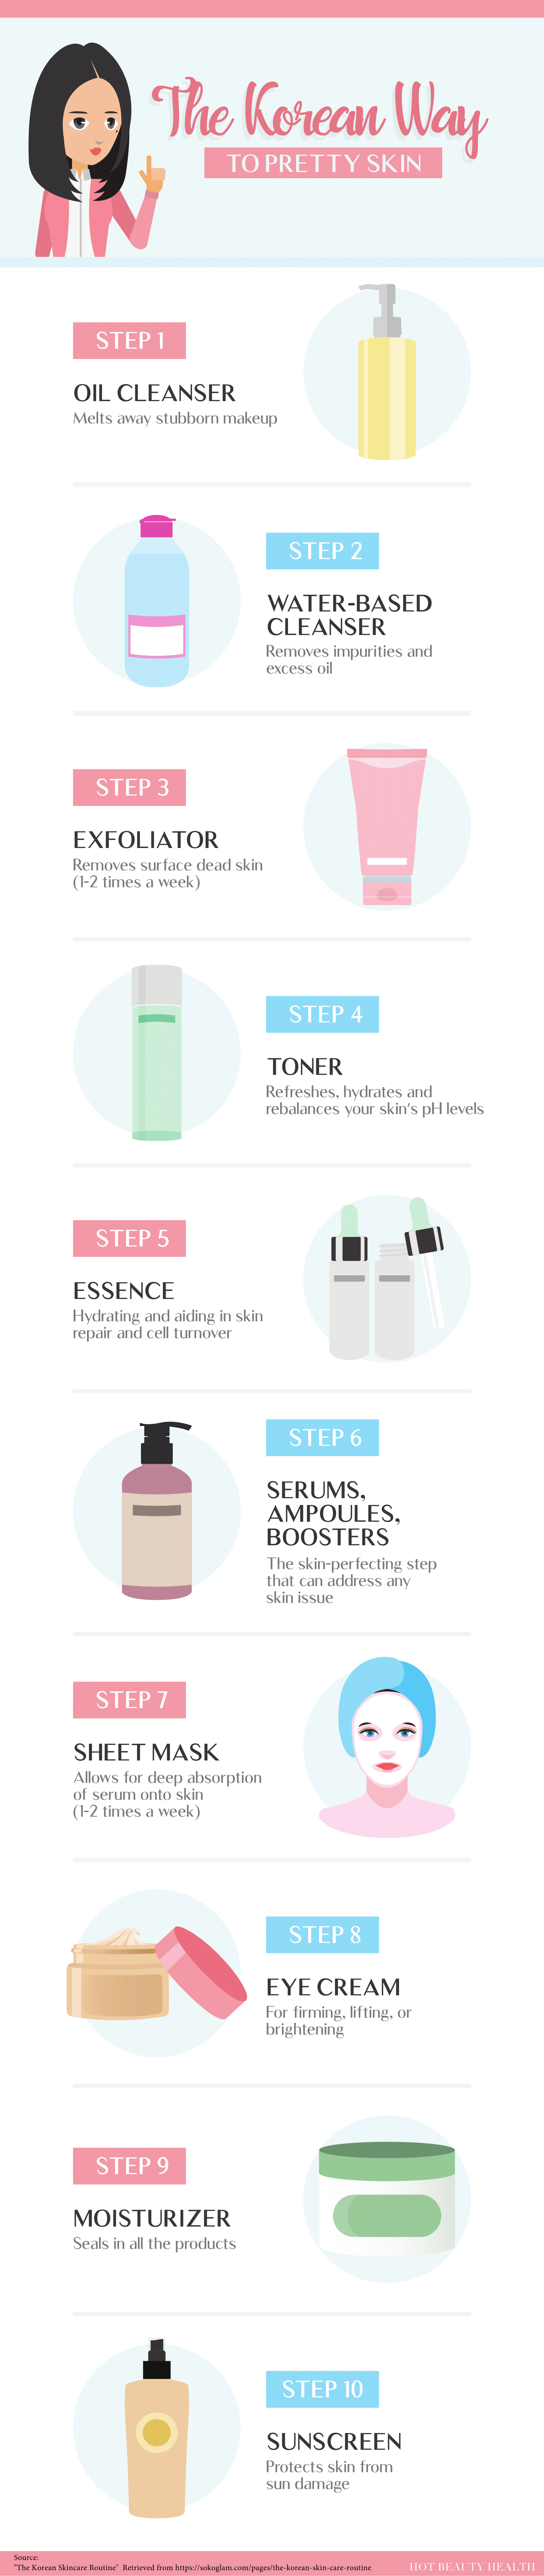 7 Enriching Winter Skin Care Best Practices For Healthy Skin Korean 10 Step Skin Care Skin Care Routine Steps Skin Care